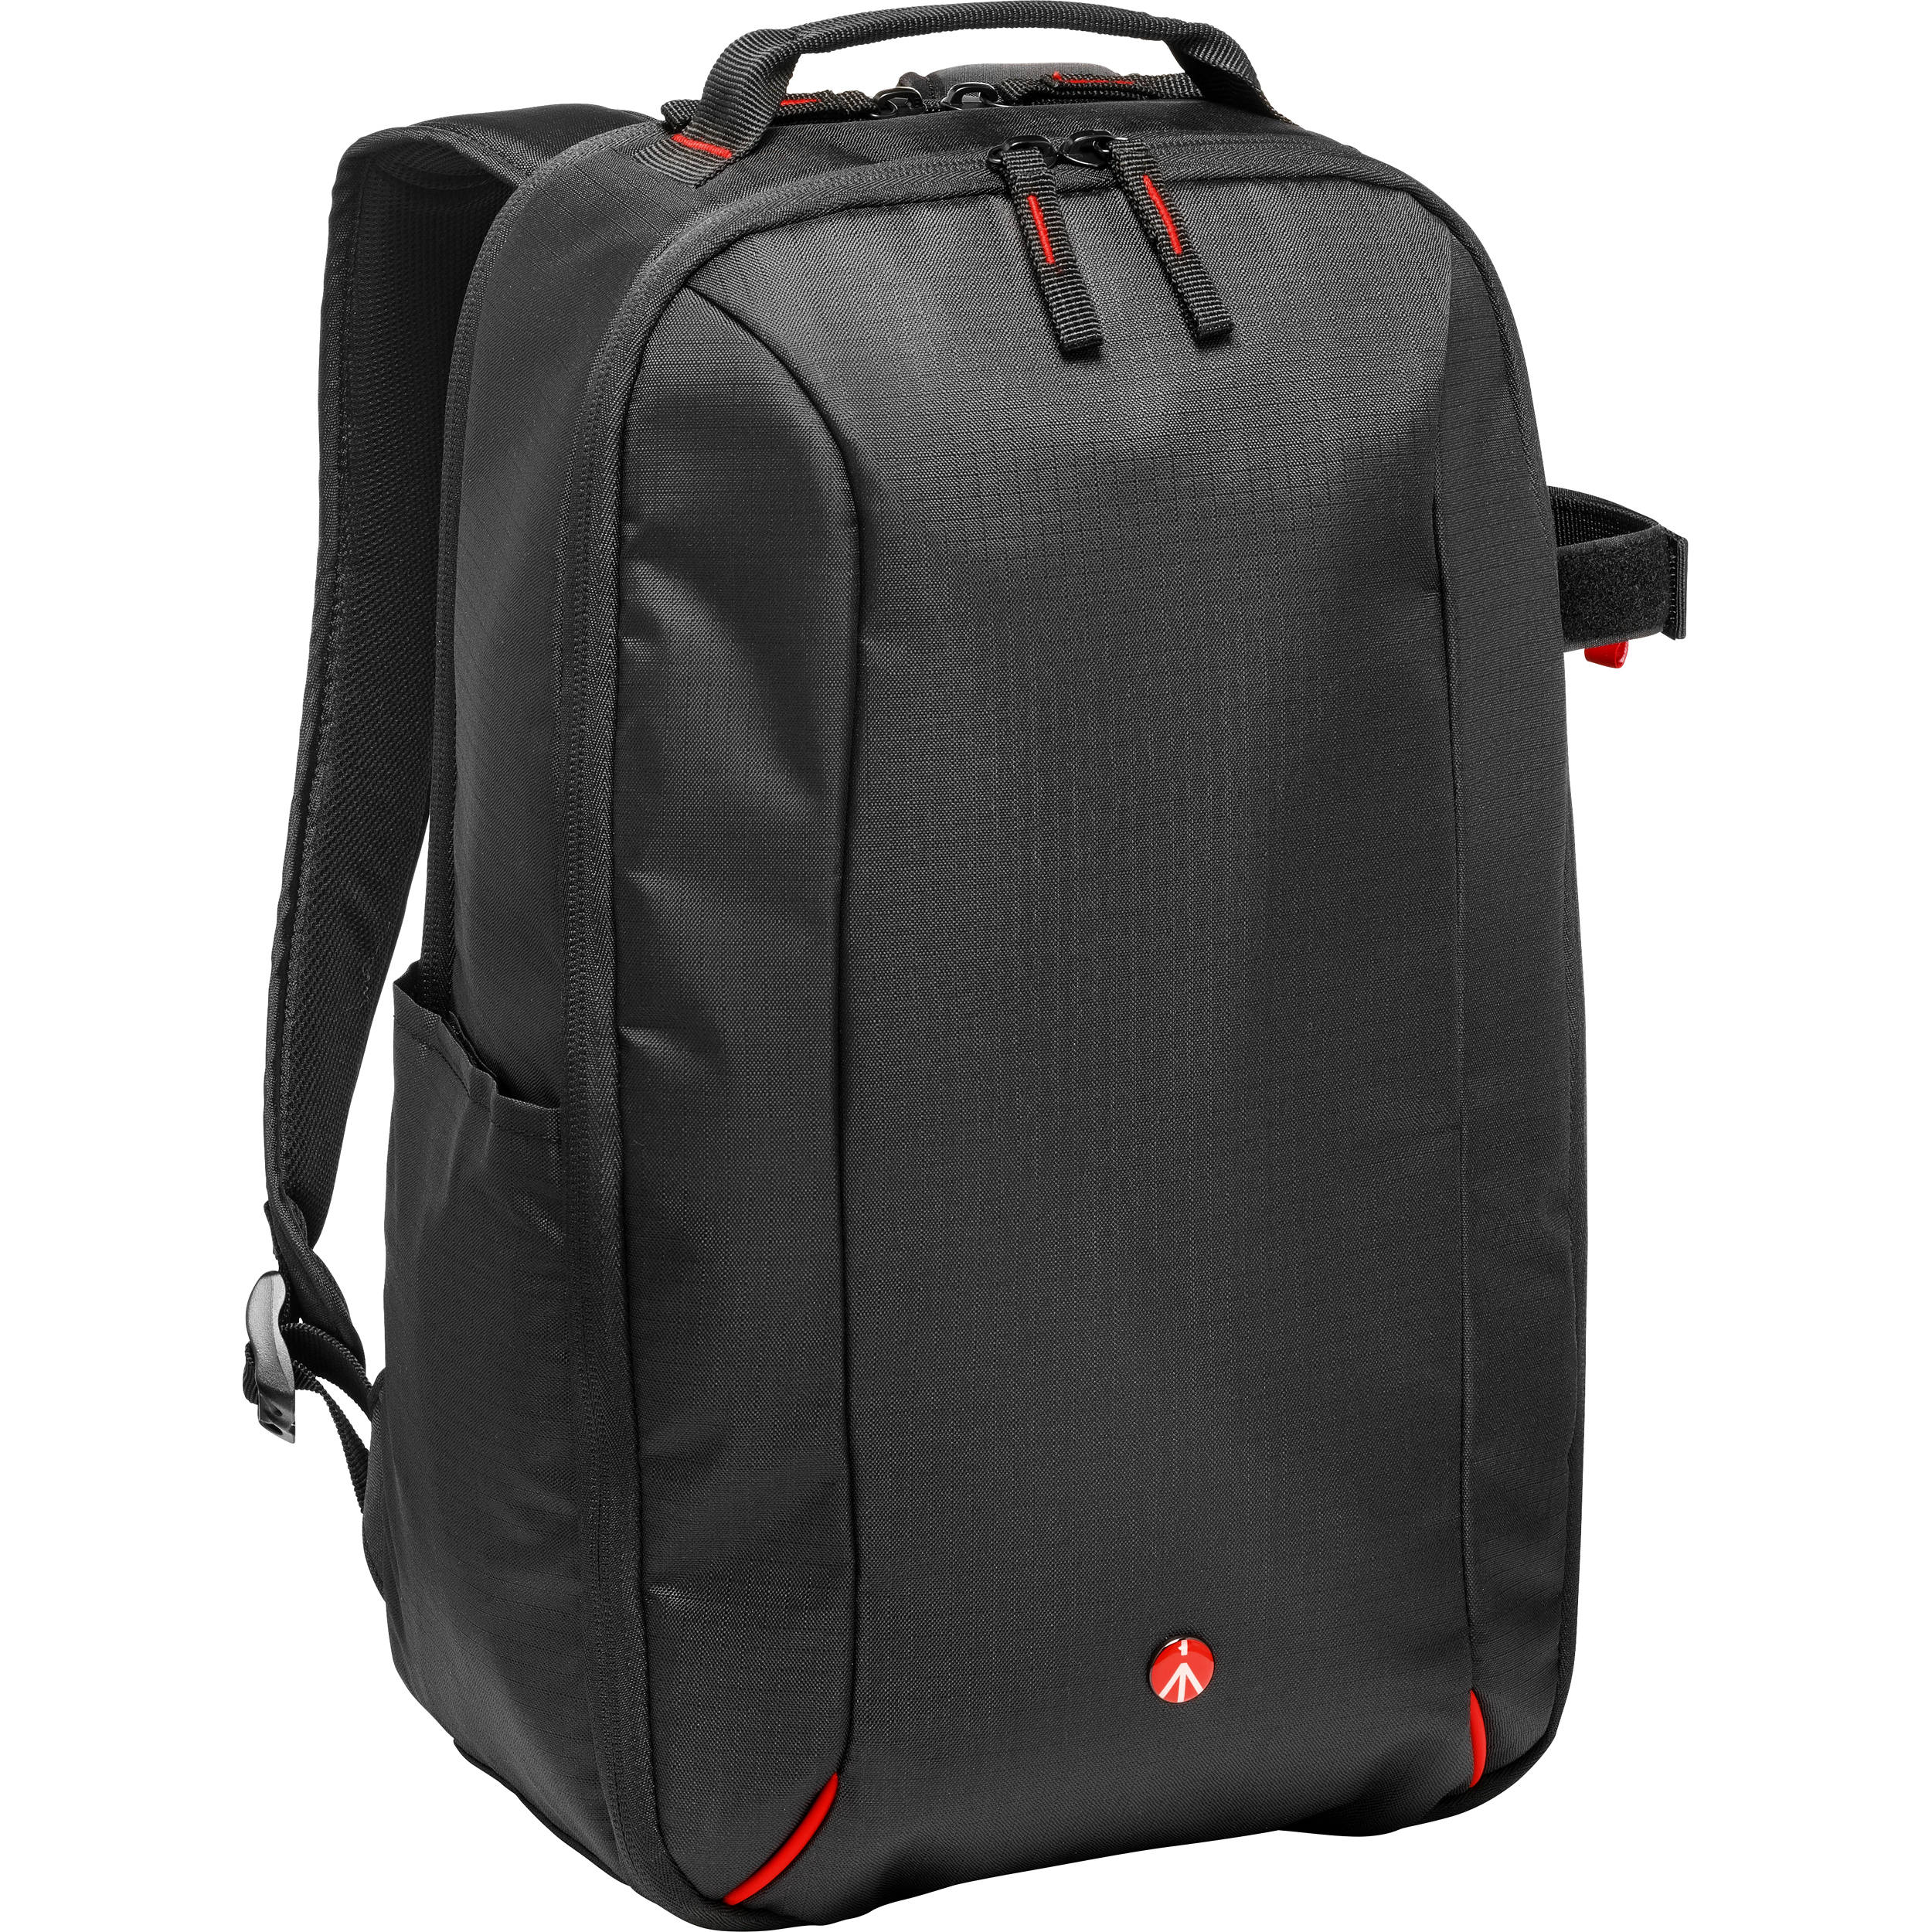 Manfrotto Essential Dslr Camera Backpack Black